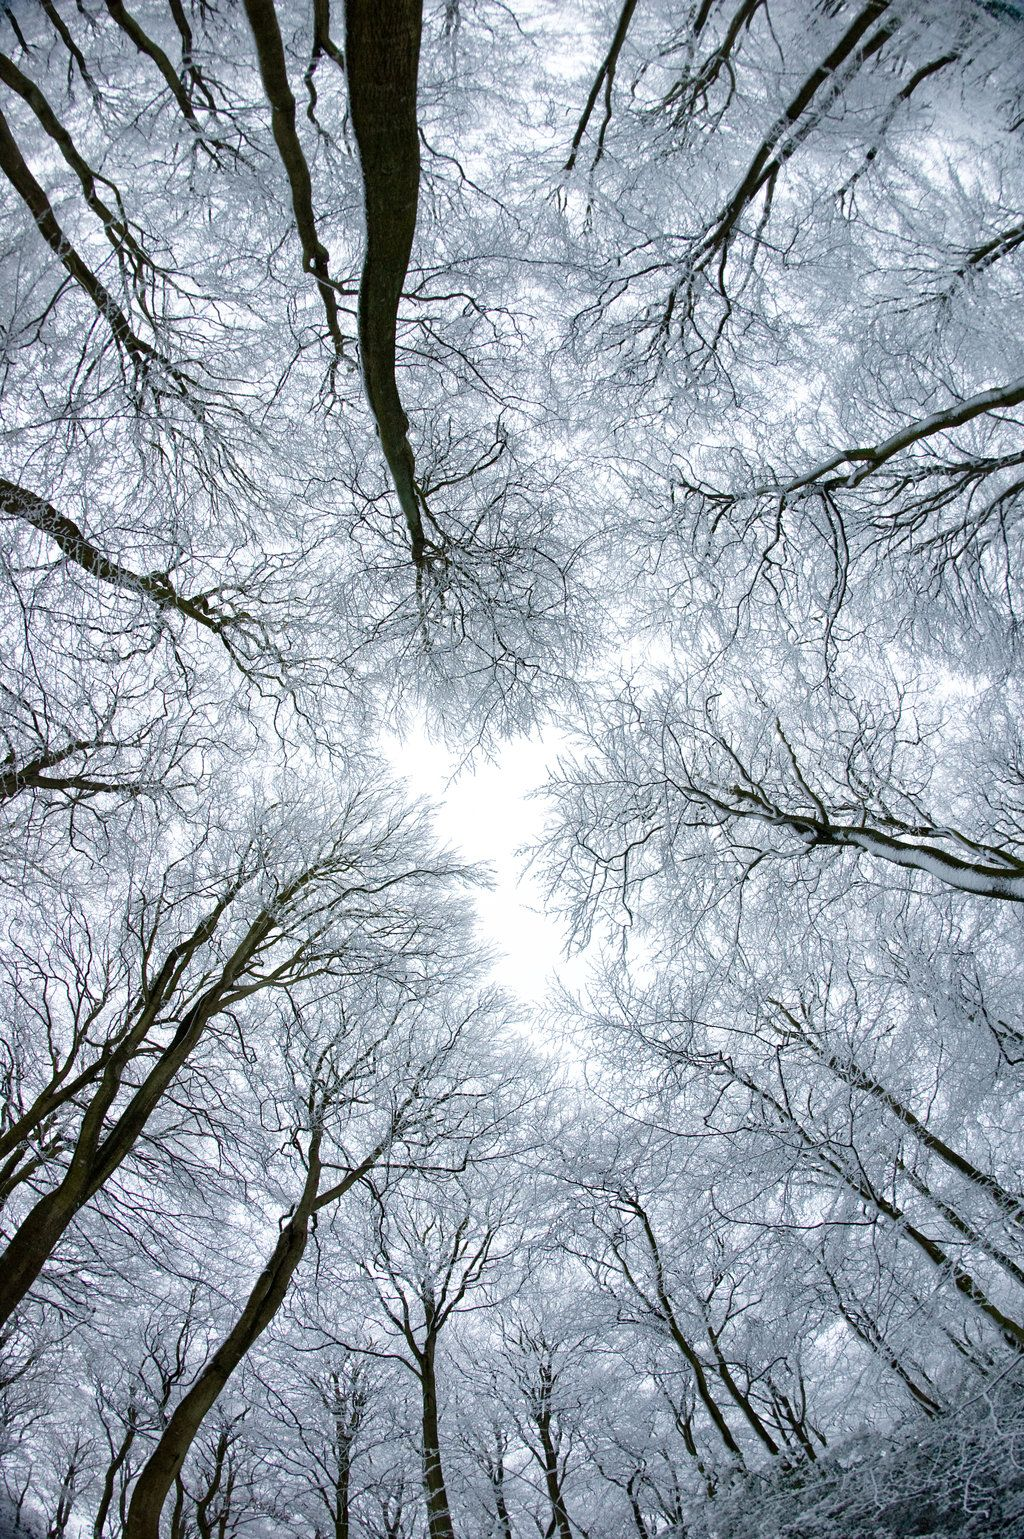 Naturbilder Wald Trees In Snow By Pnewbery Outstanding Photography